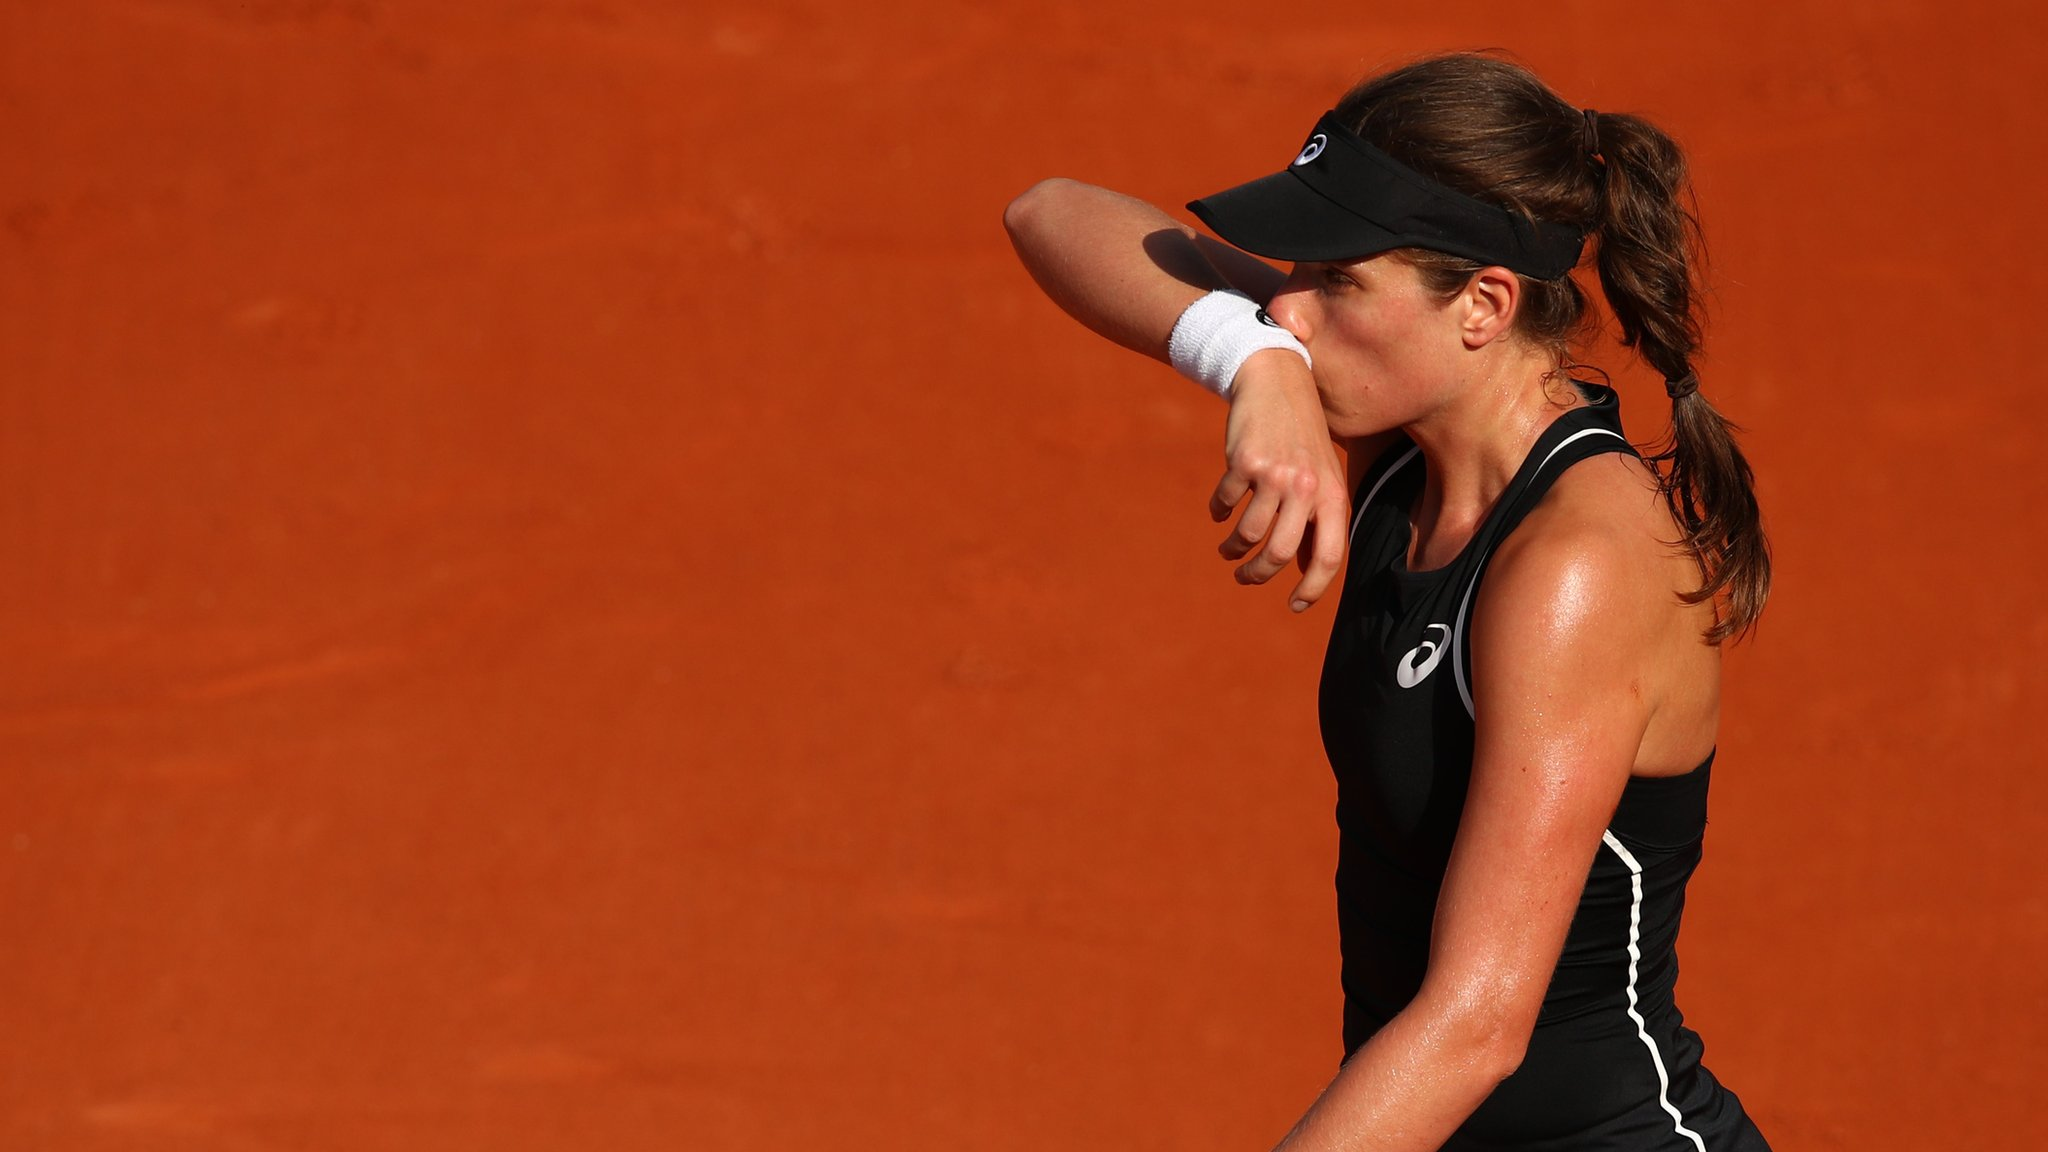 Still no win at Roland Garros - British hope Konta out in French Open first round